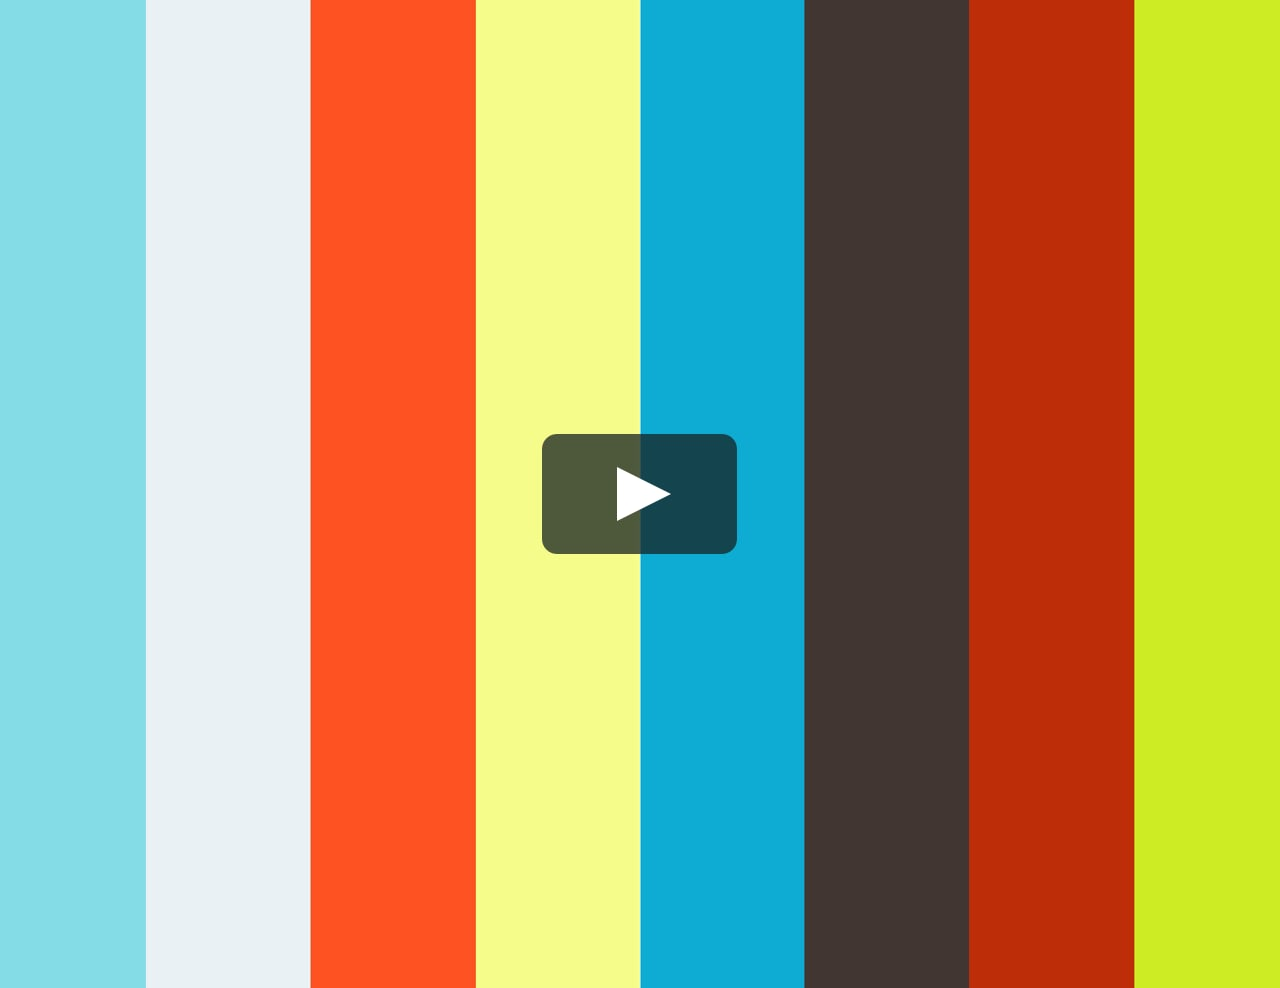 Ssfcu Login In >> Ssfcu Login Instructions On Vimeo